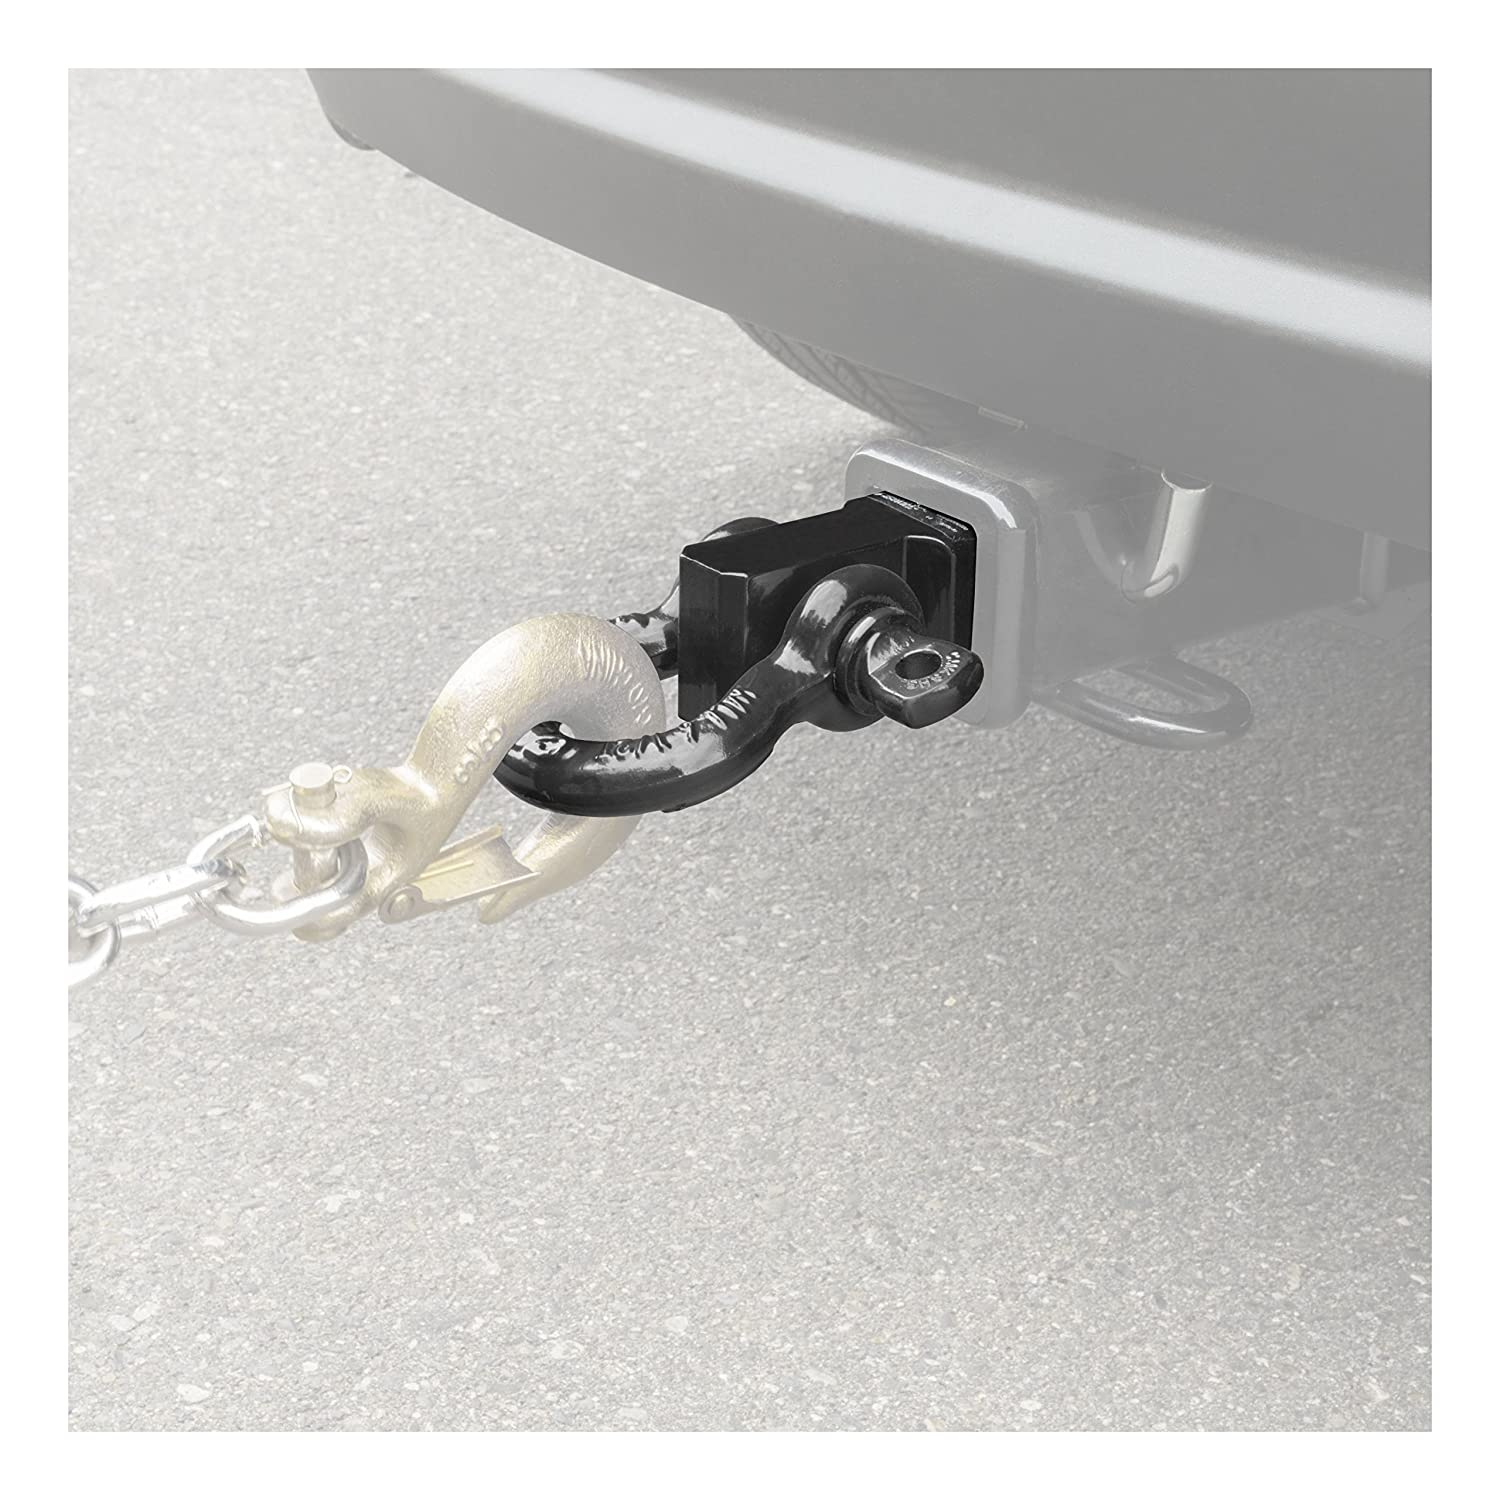 CURT 45832 D-Ring Shackle Mount Trailer Hitch 13,000 lbs. Fits 2-Inch Receiver